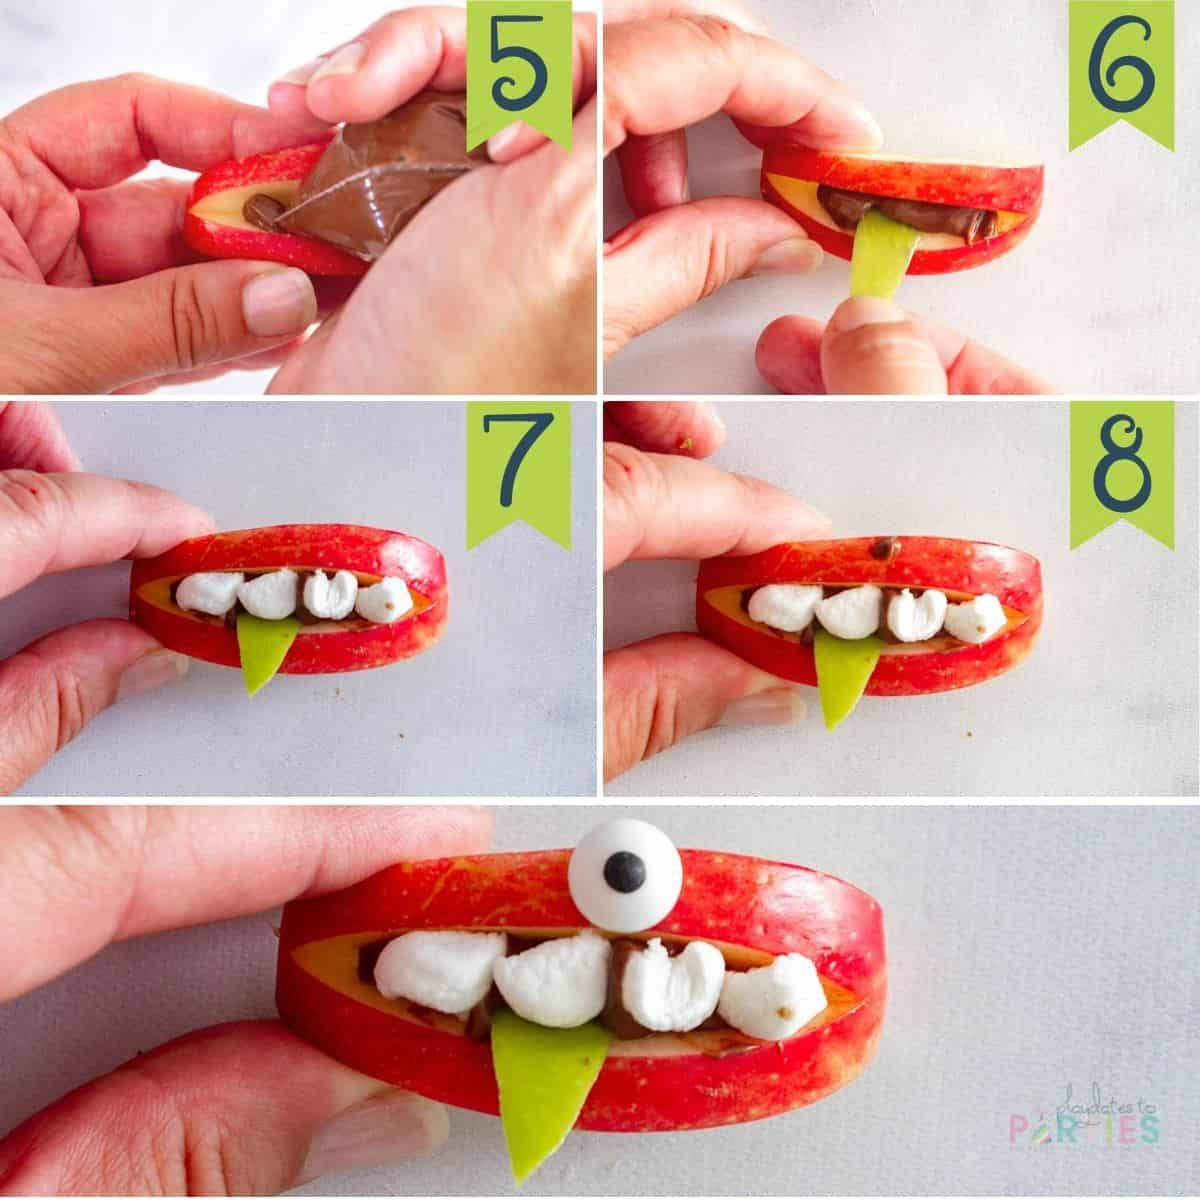 Steps 5-8 for making monster apple treats: piping in the filling, adding a tongue, adding the teeth, and sticking on a candy eyeball